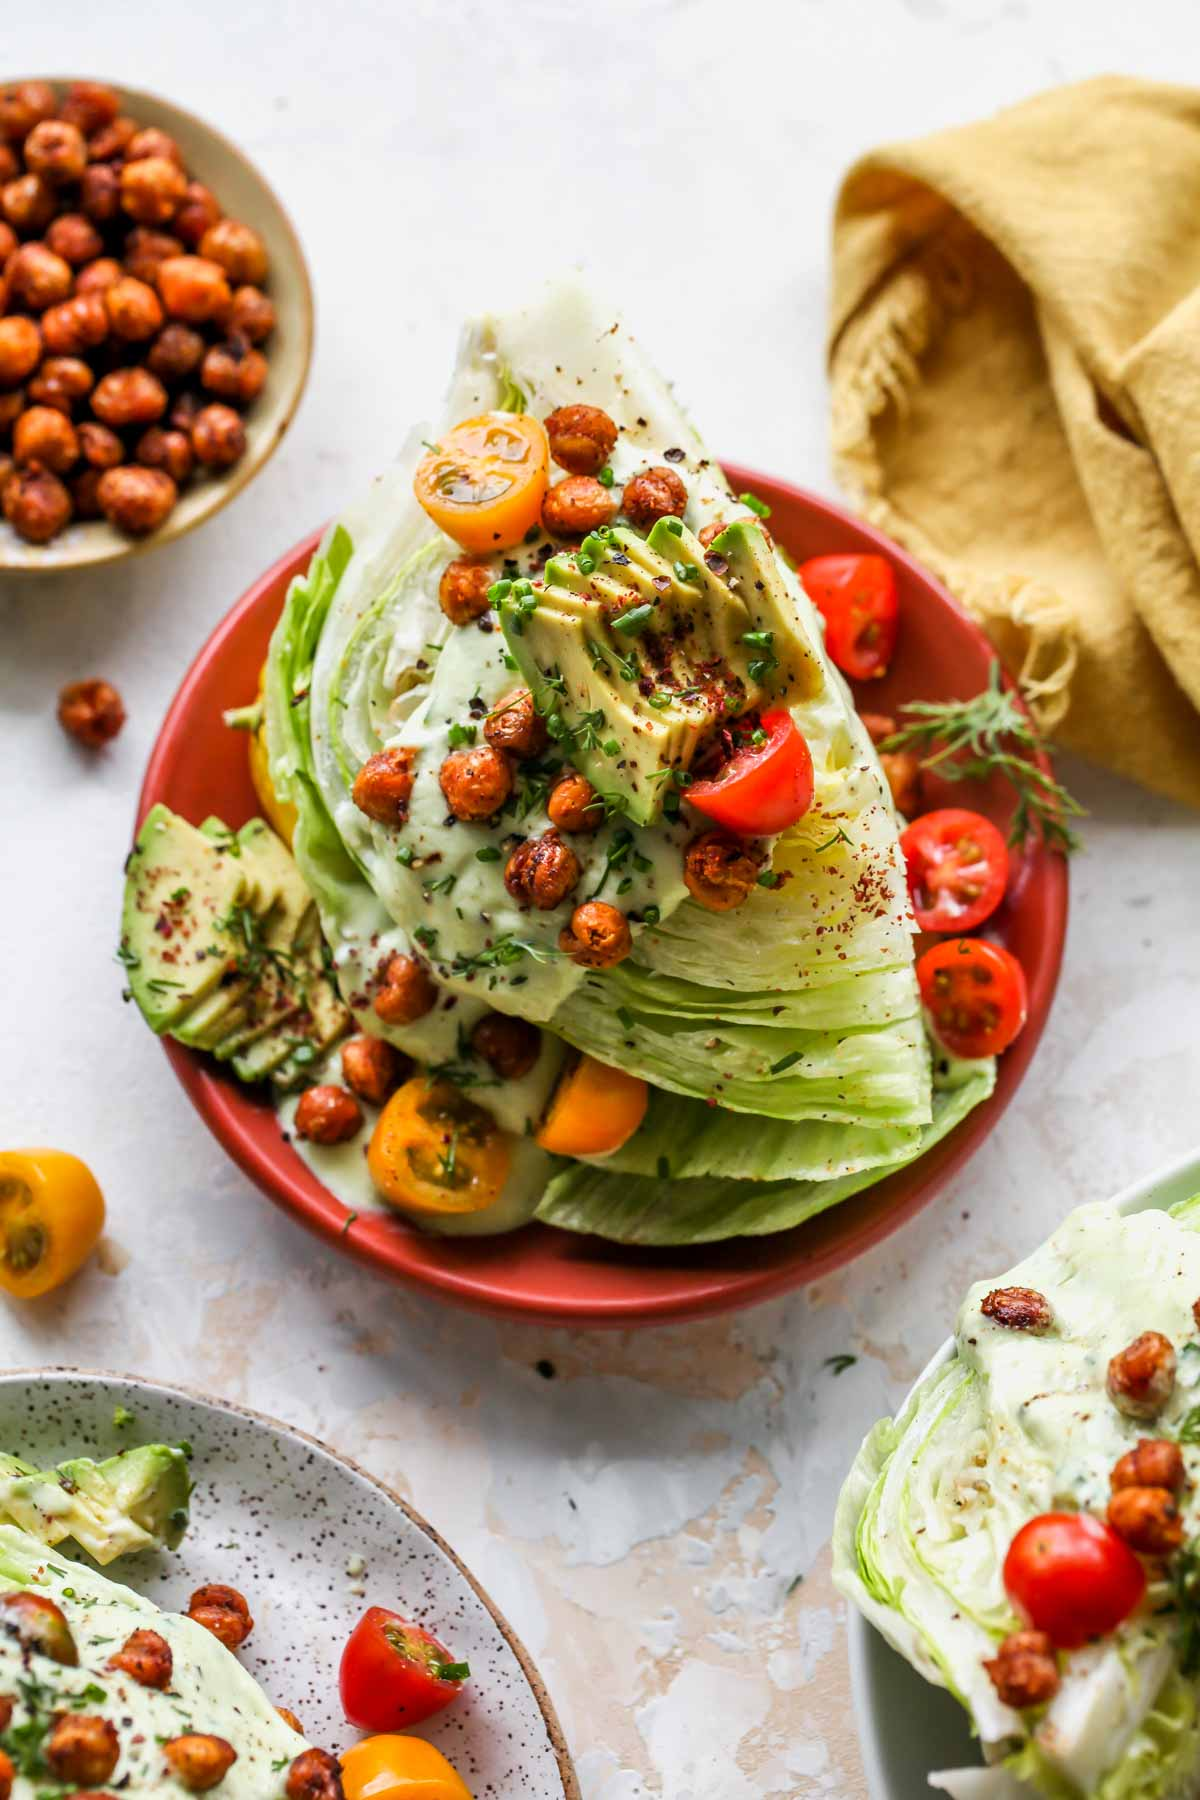 Iceberg salads on separate plates topped with dressing, chickpeas, tomatoes and herbs